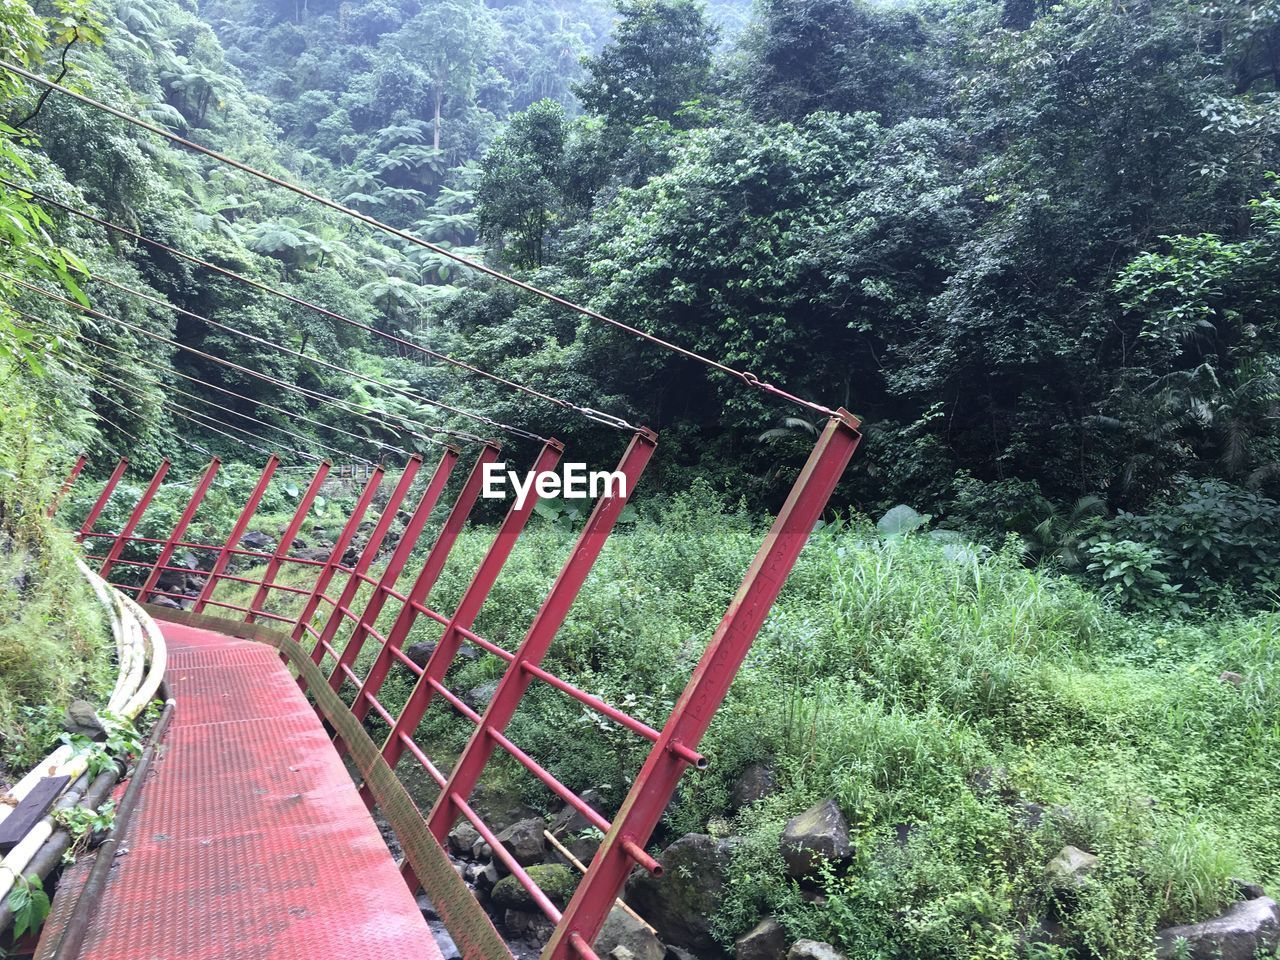 tree, growth, railing, lush foliage, forest, day, green color, nature, outdoors, no people, plant, tranquility, beauty in nature, scenics, footbridge